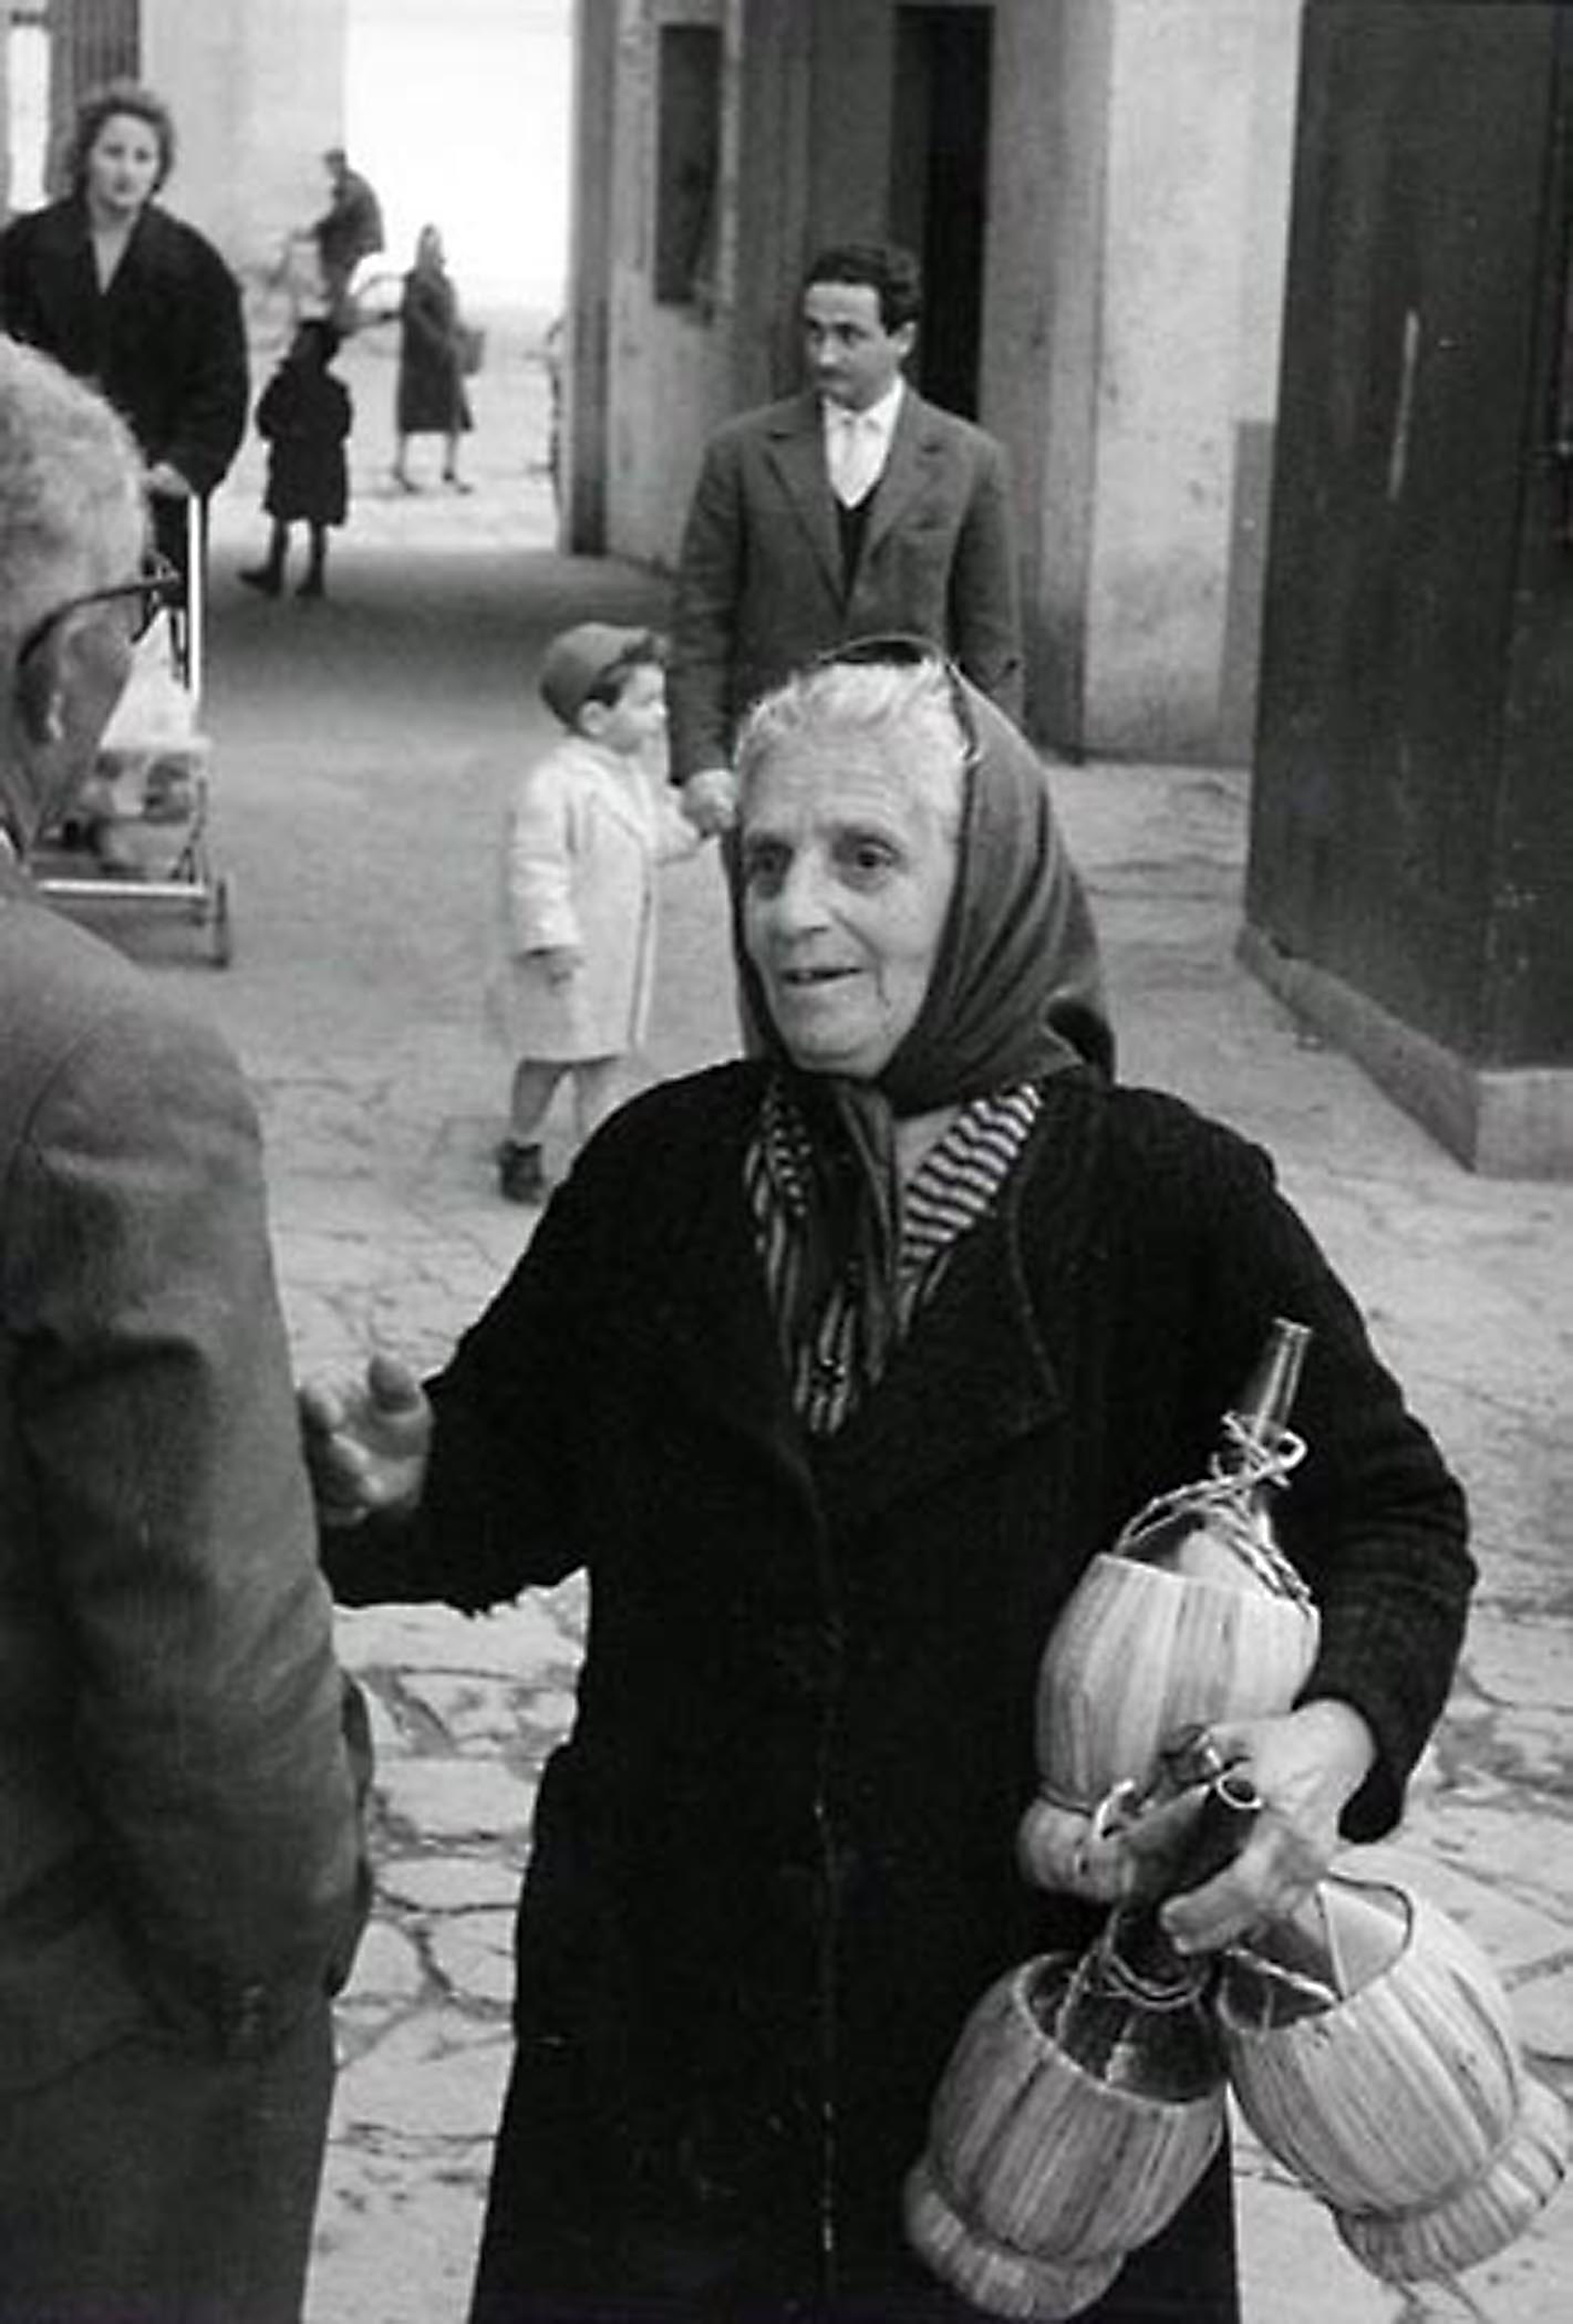 HANNON_woman_with_wine_bottles_(italy)_1958_11x14_high.jpg